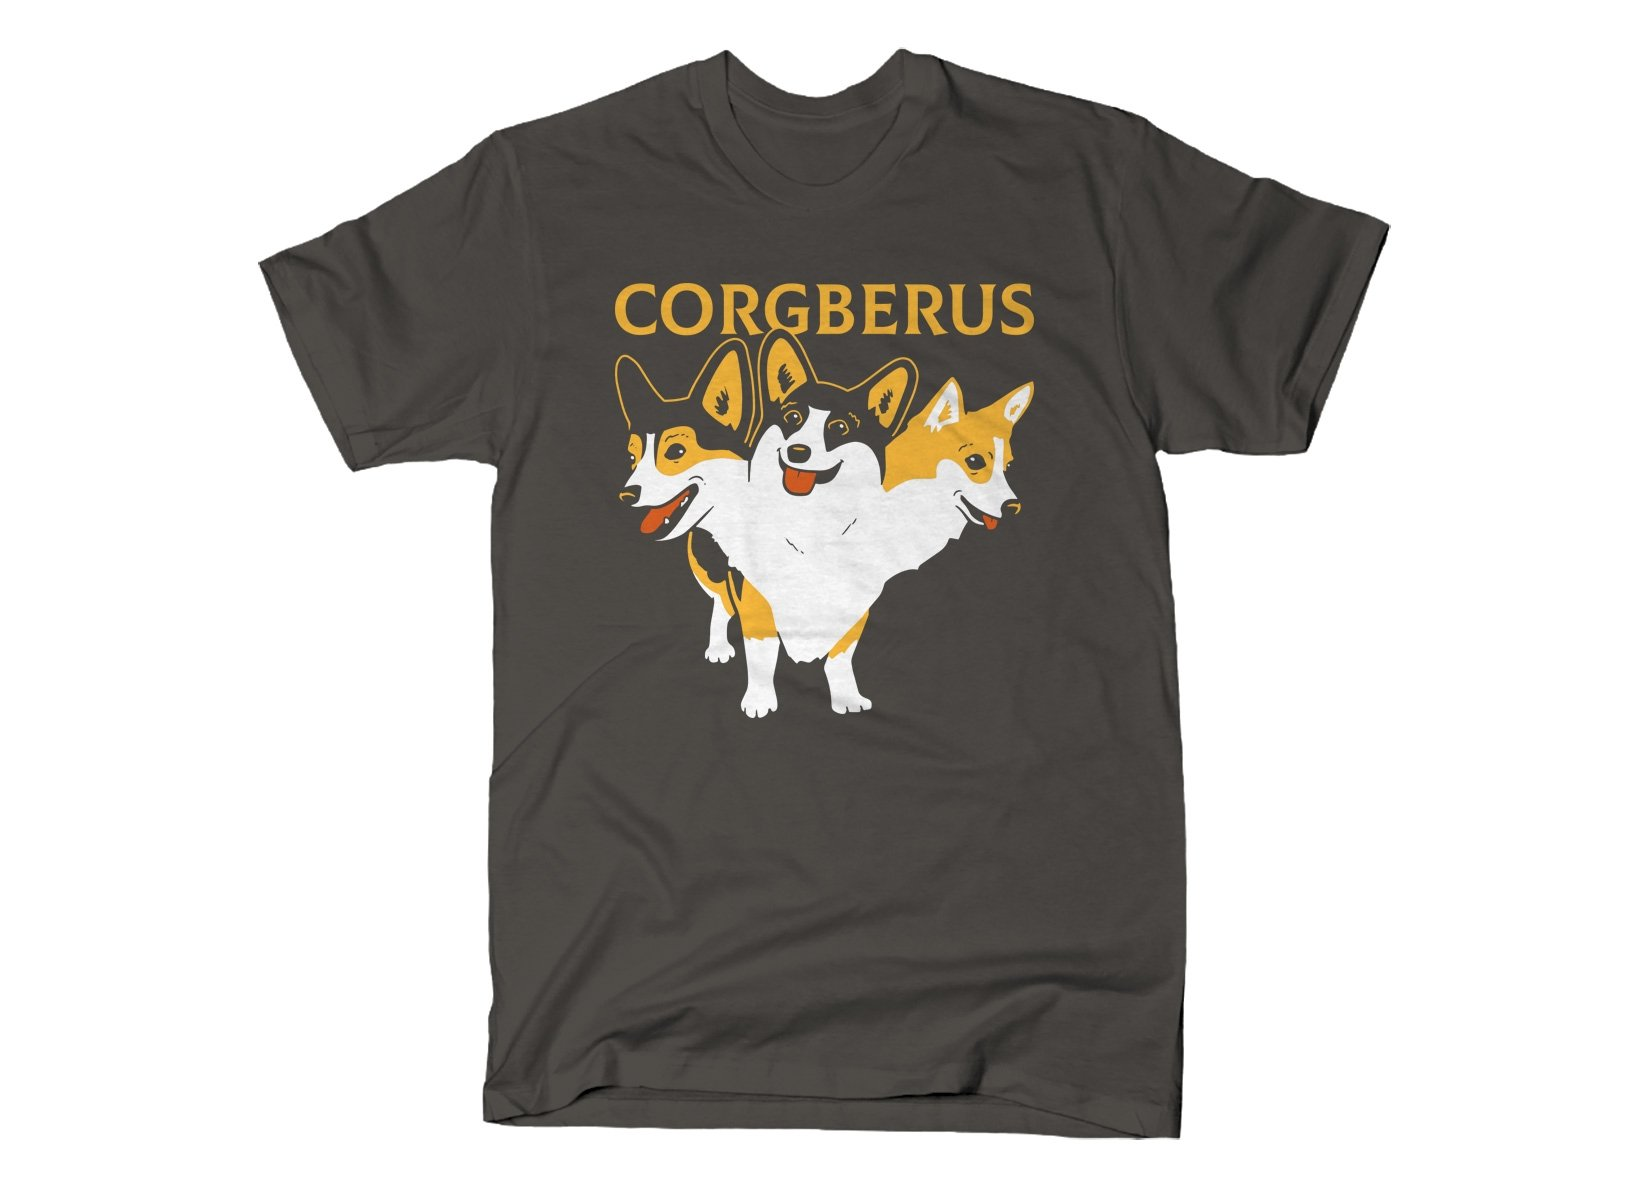 Corgberus on Mens T-Shirt